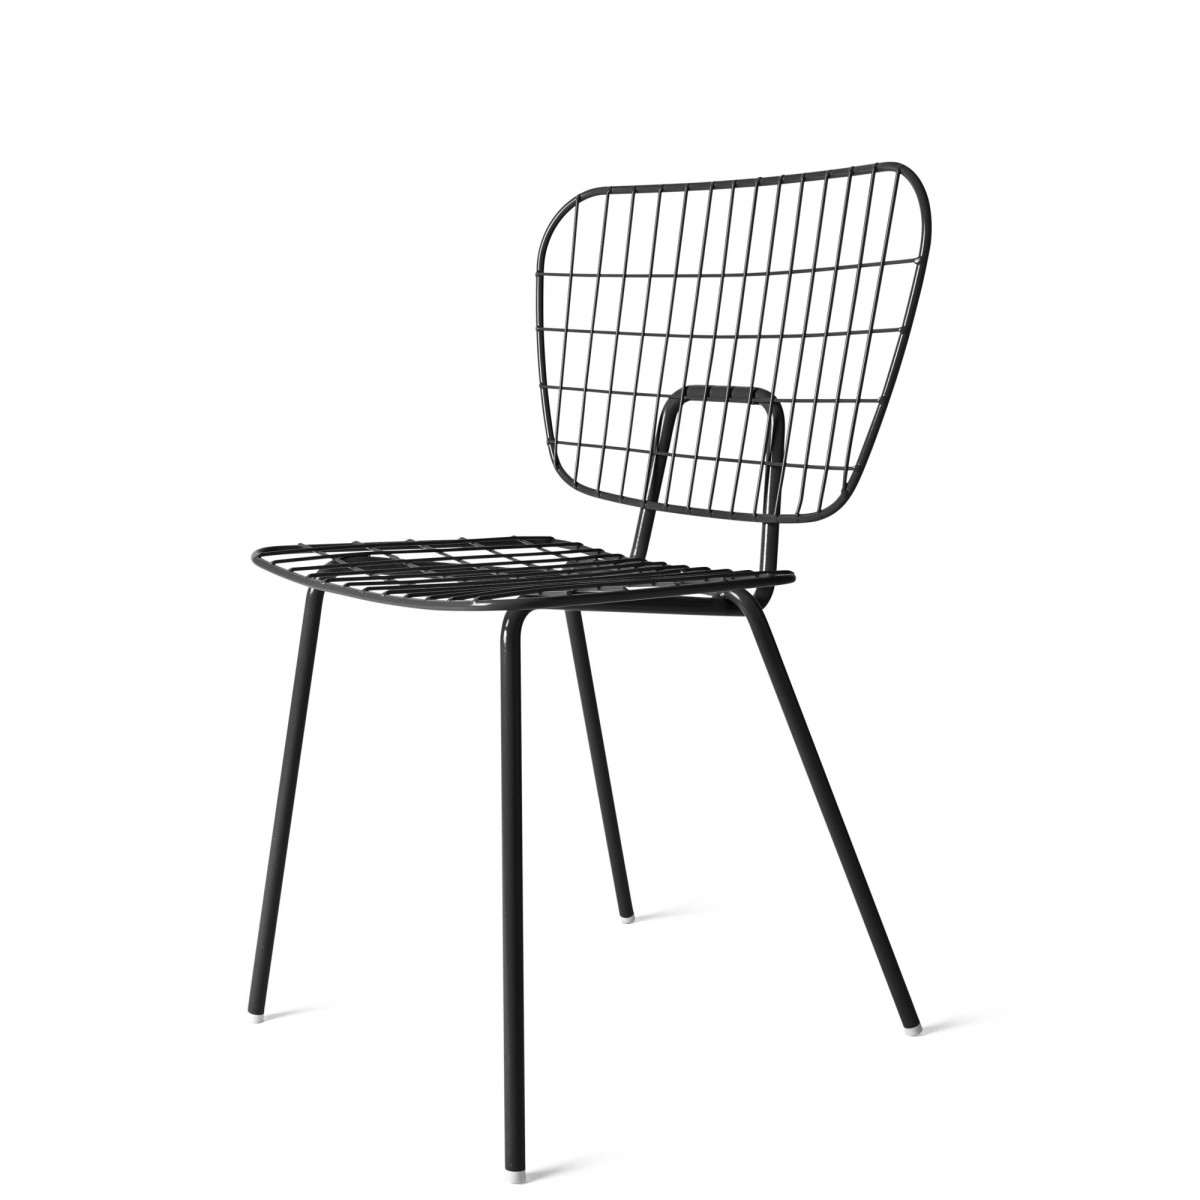 Wm String Chair In Powder Coated Steel